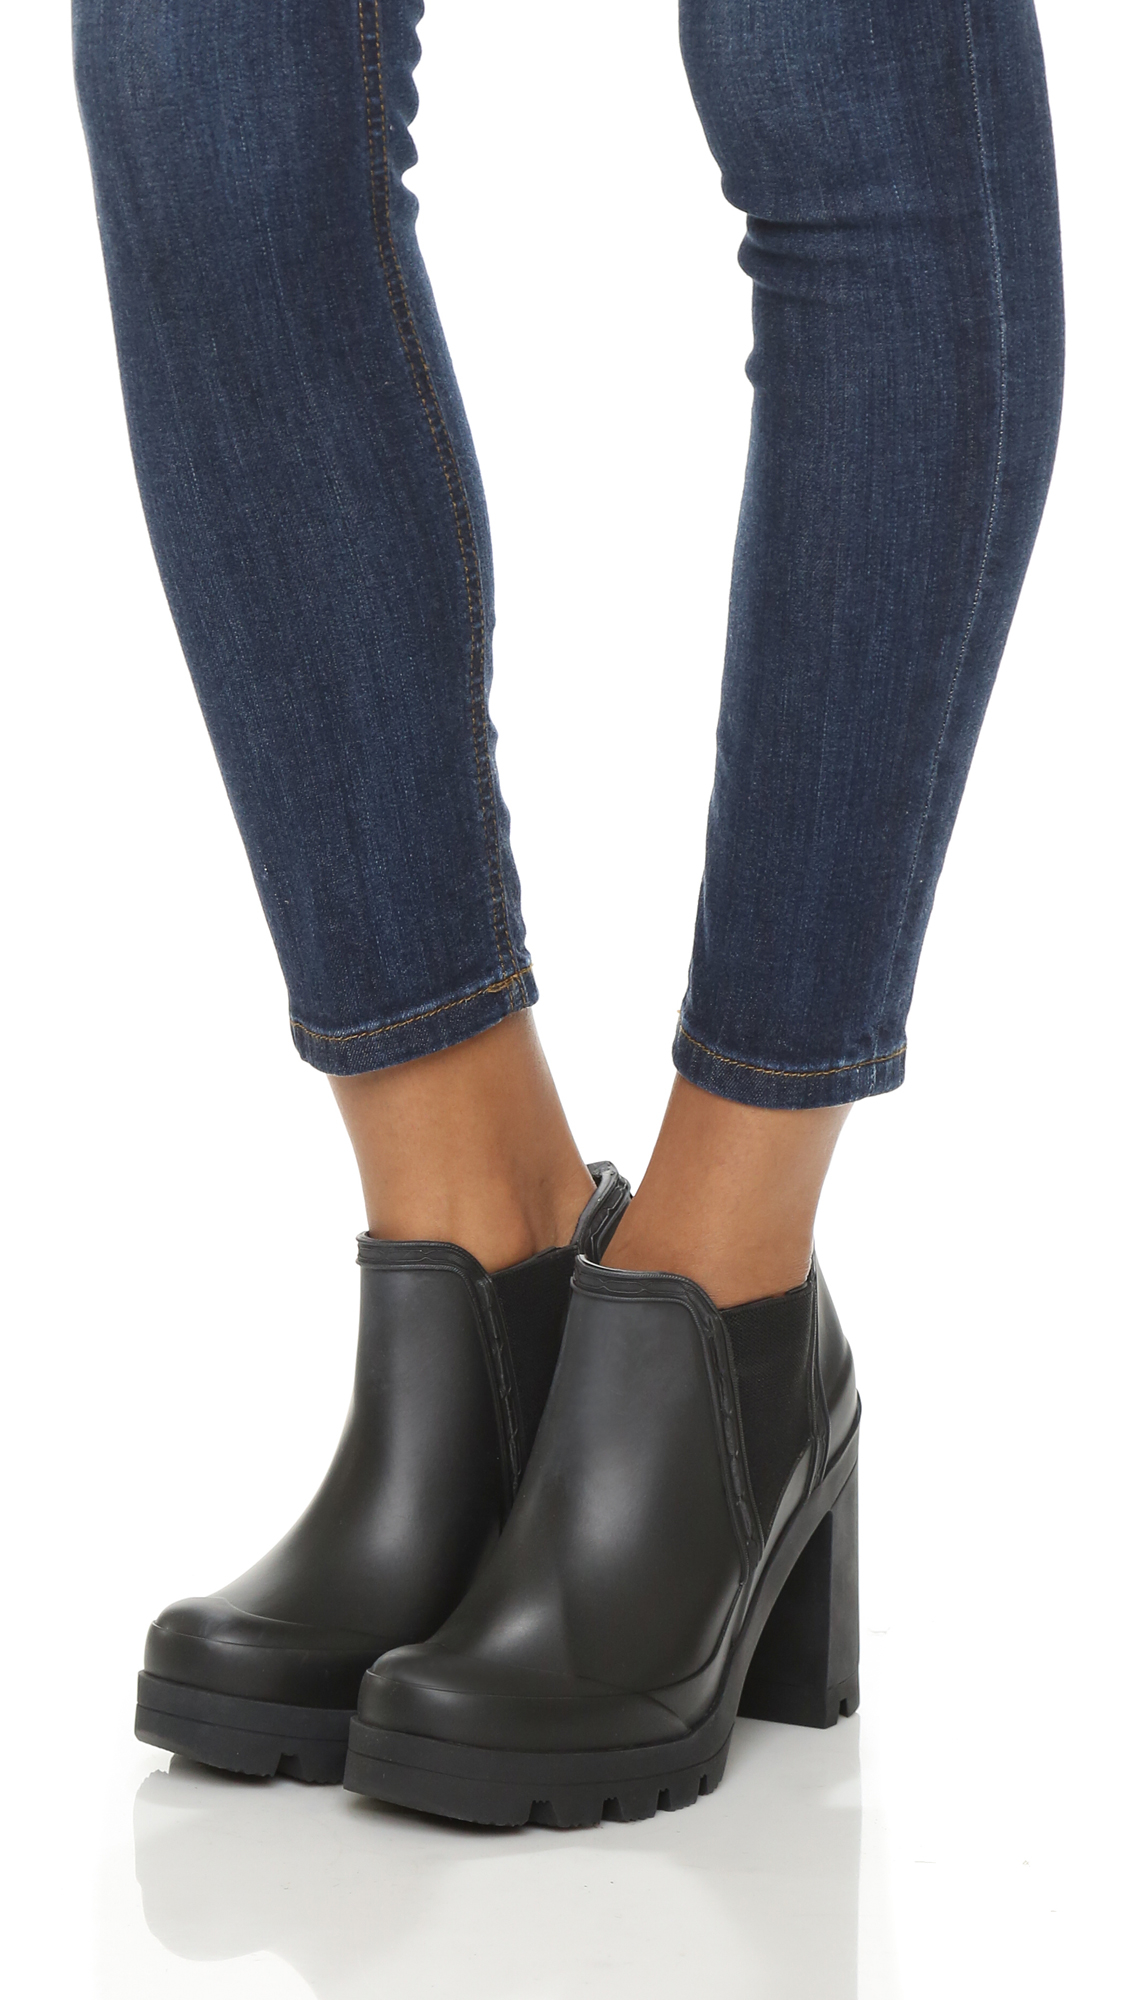 8e7762b35 HUNTER Original High Heel Shoes - Black in Black - Lyst